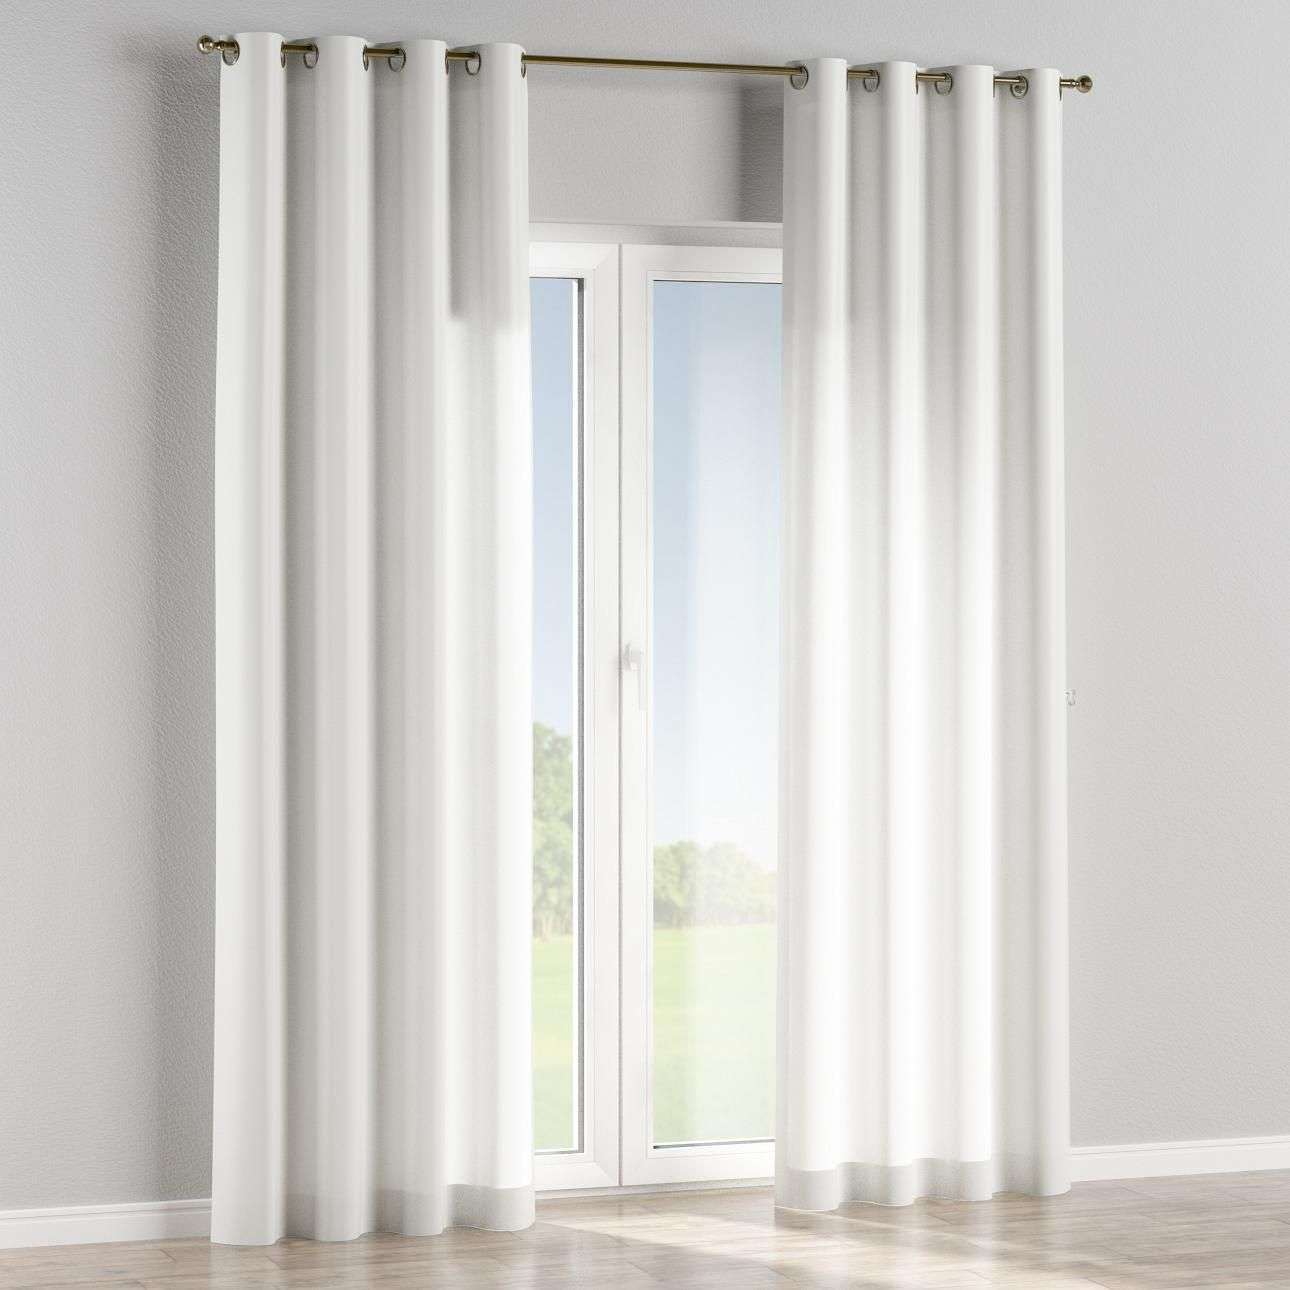 Eyelet lined curtains in collection Ashley, fabric: 137-66